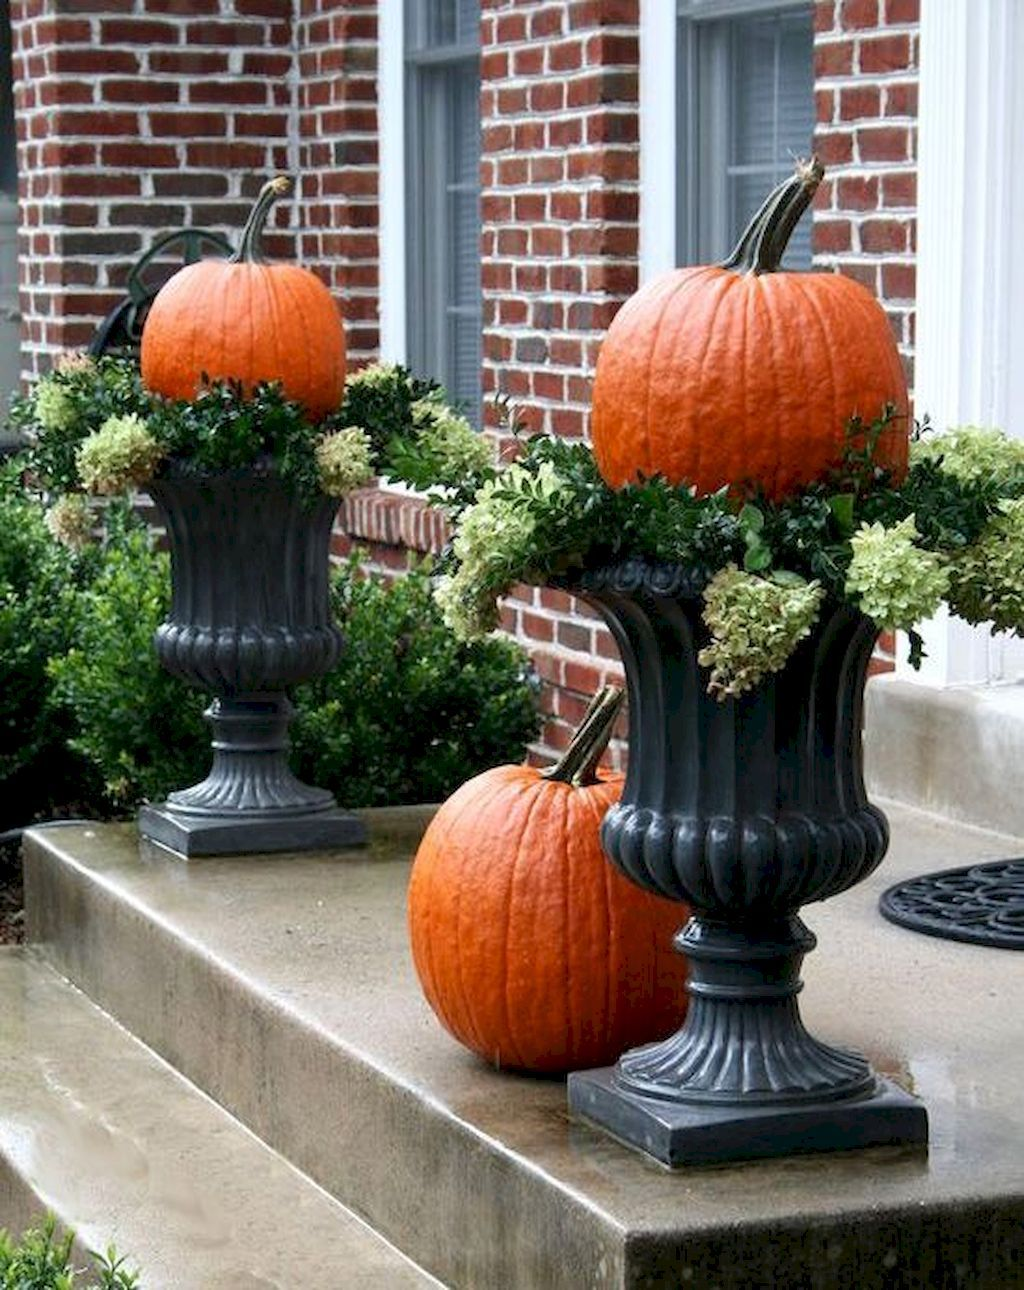 80 + CREEPY OUTDOOR HALLOWEEN DECORATION IDEAS Gardening - Pinterest Outdoor Halloween Decorations